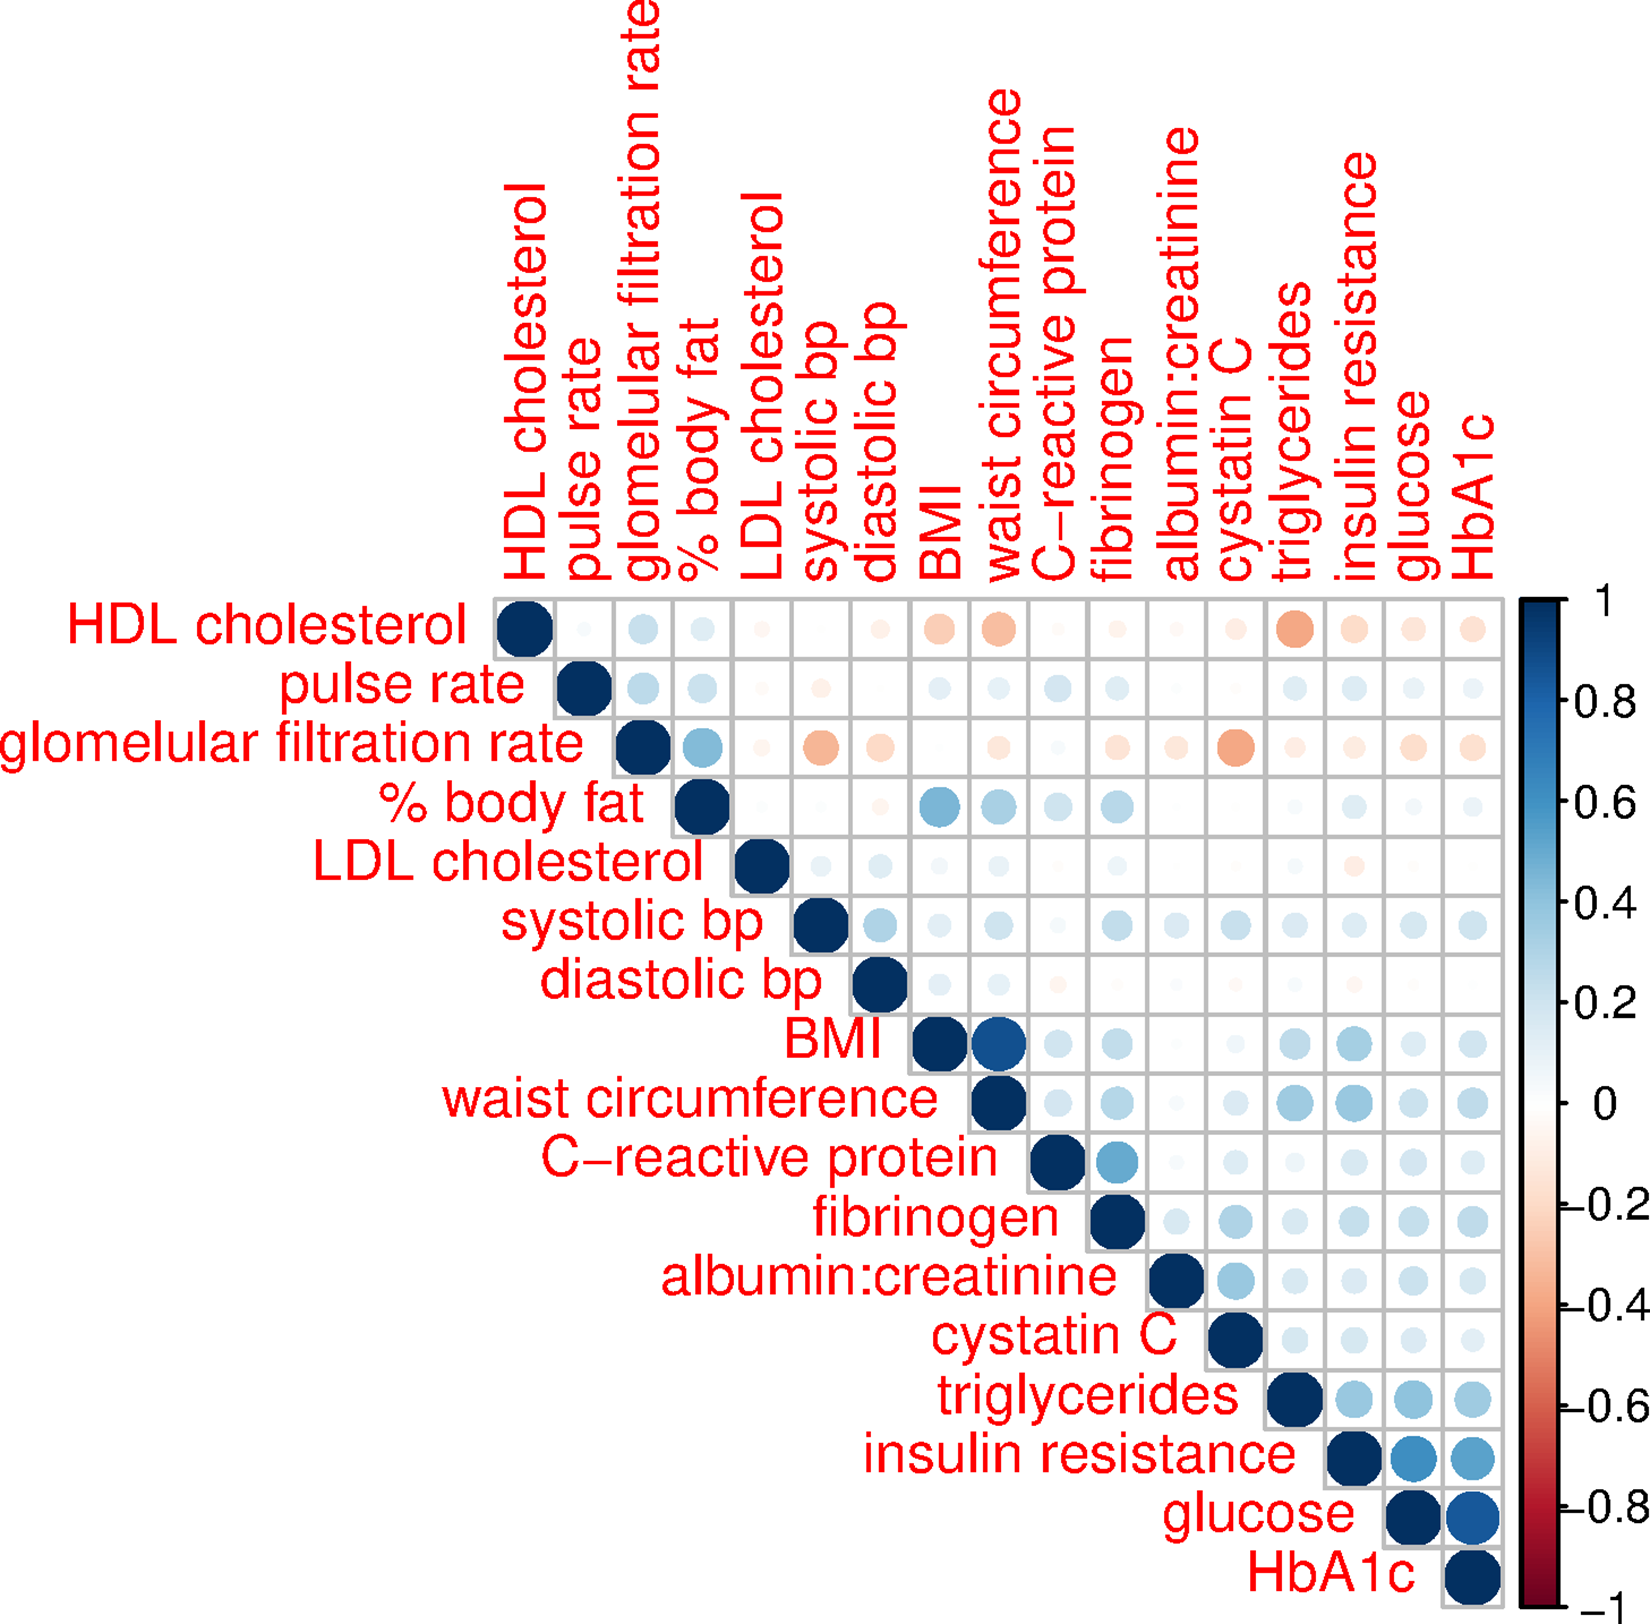 Correlation structure of biomarkers, ages 20–84, NHANES 1999–2002.